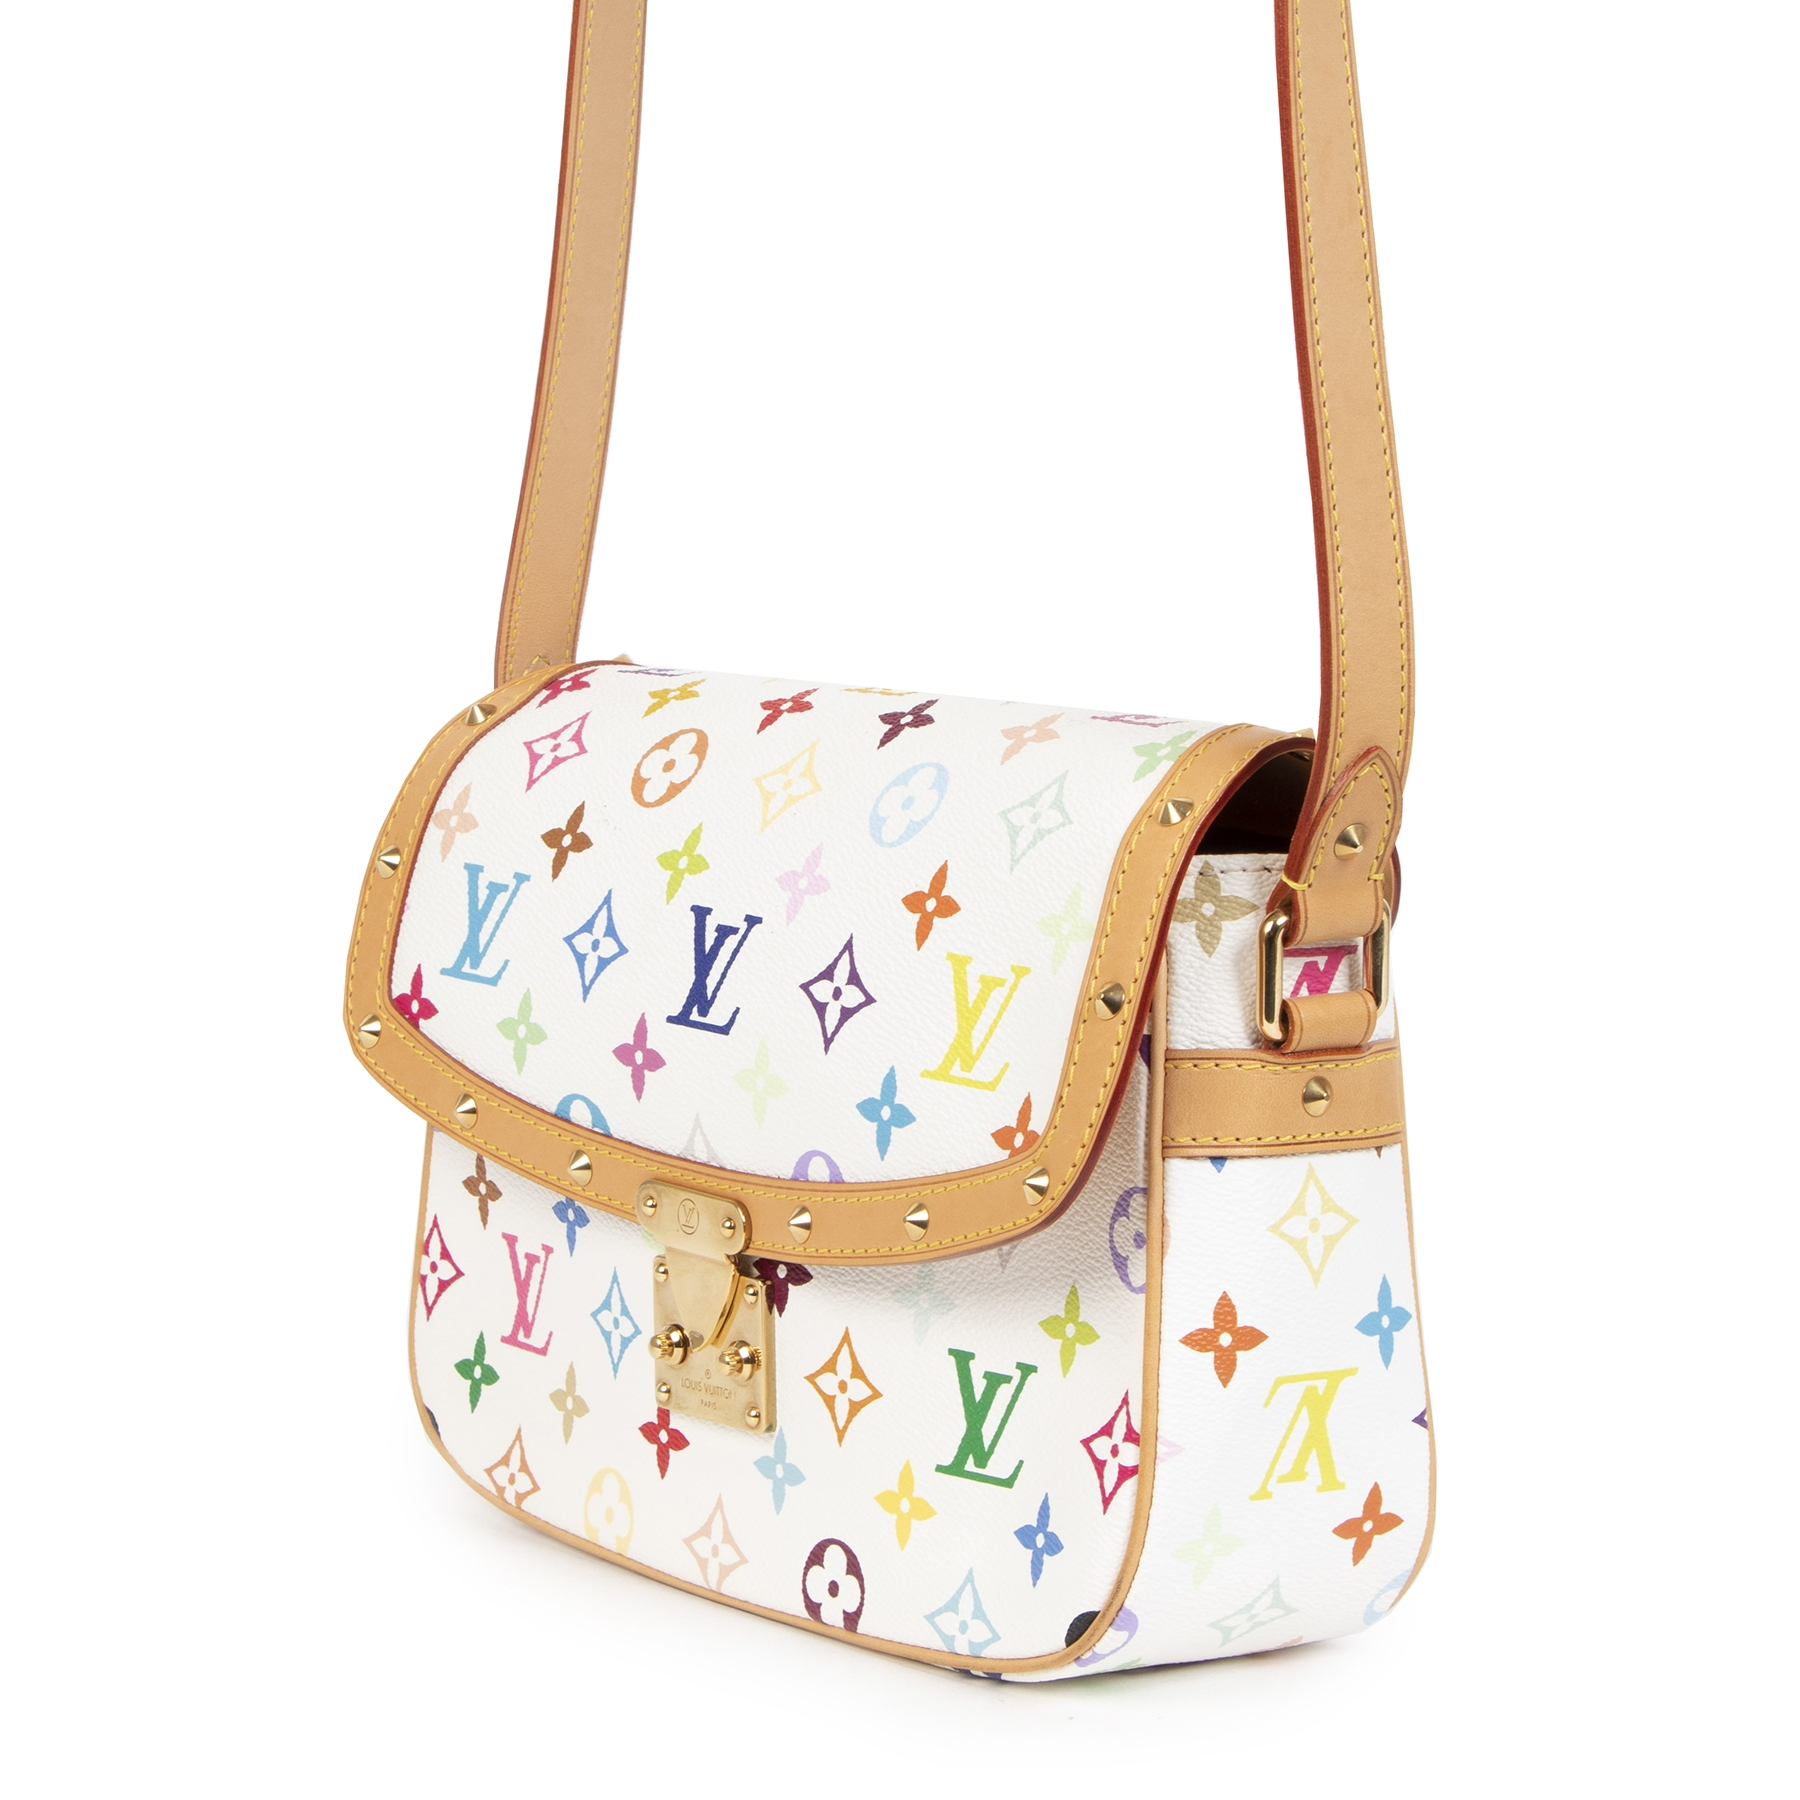 Buy authentic secondhand Louis Vuitton Multicolor Monogram White Sologne Cross Body Bag at the right price at LabelLOV vintage webshop. Safe and secure online shopping. Koop authentieke tweedehands Louis Vuitton Multicolor Monogram White Sologne Cross Bod